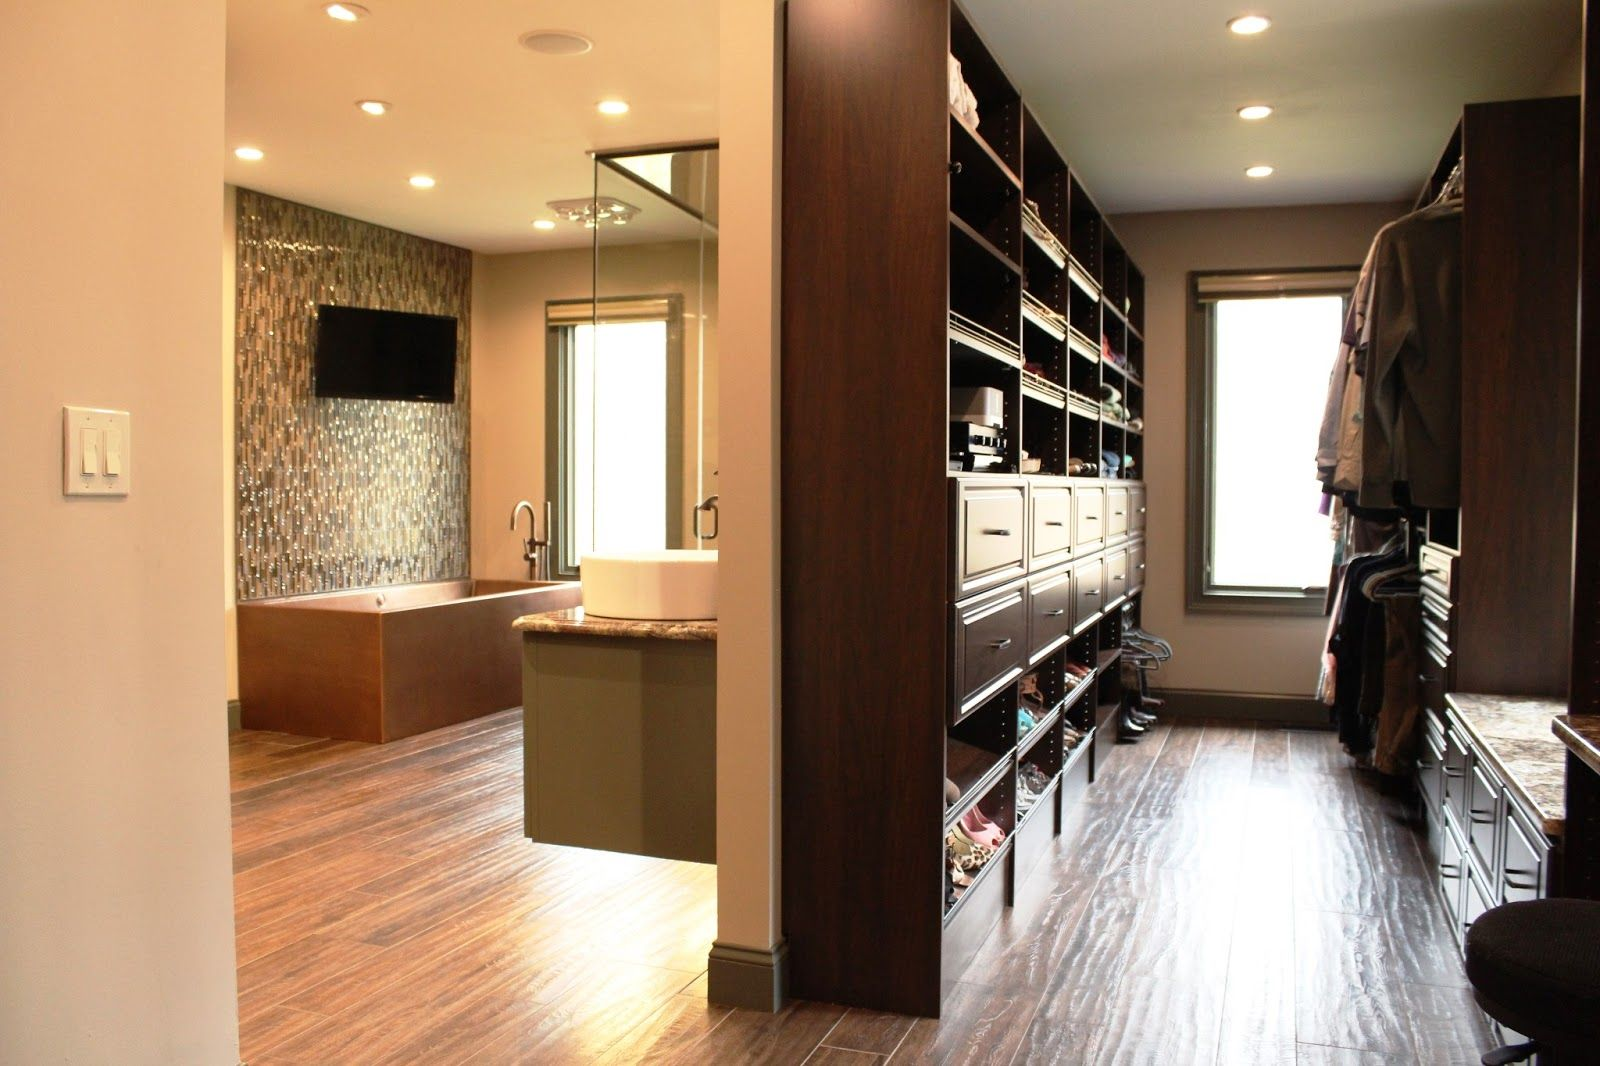 Luxury Walk in Closet Pictures For Inspiration Impressive Luxury Walkin  Closet Design with Mahogany  Luxury. Bathroom And Walk In Closet Designs